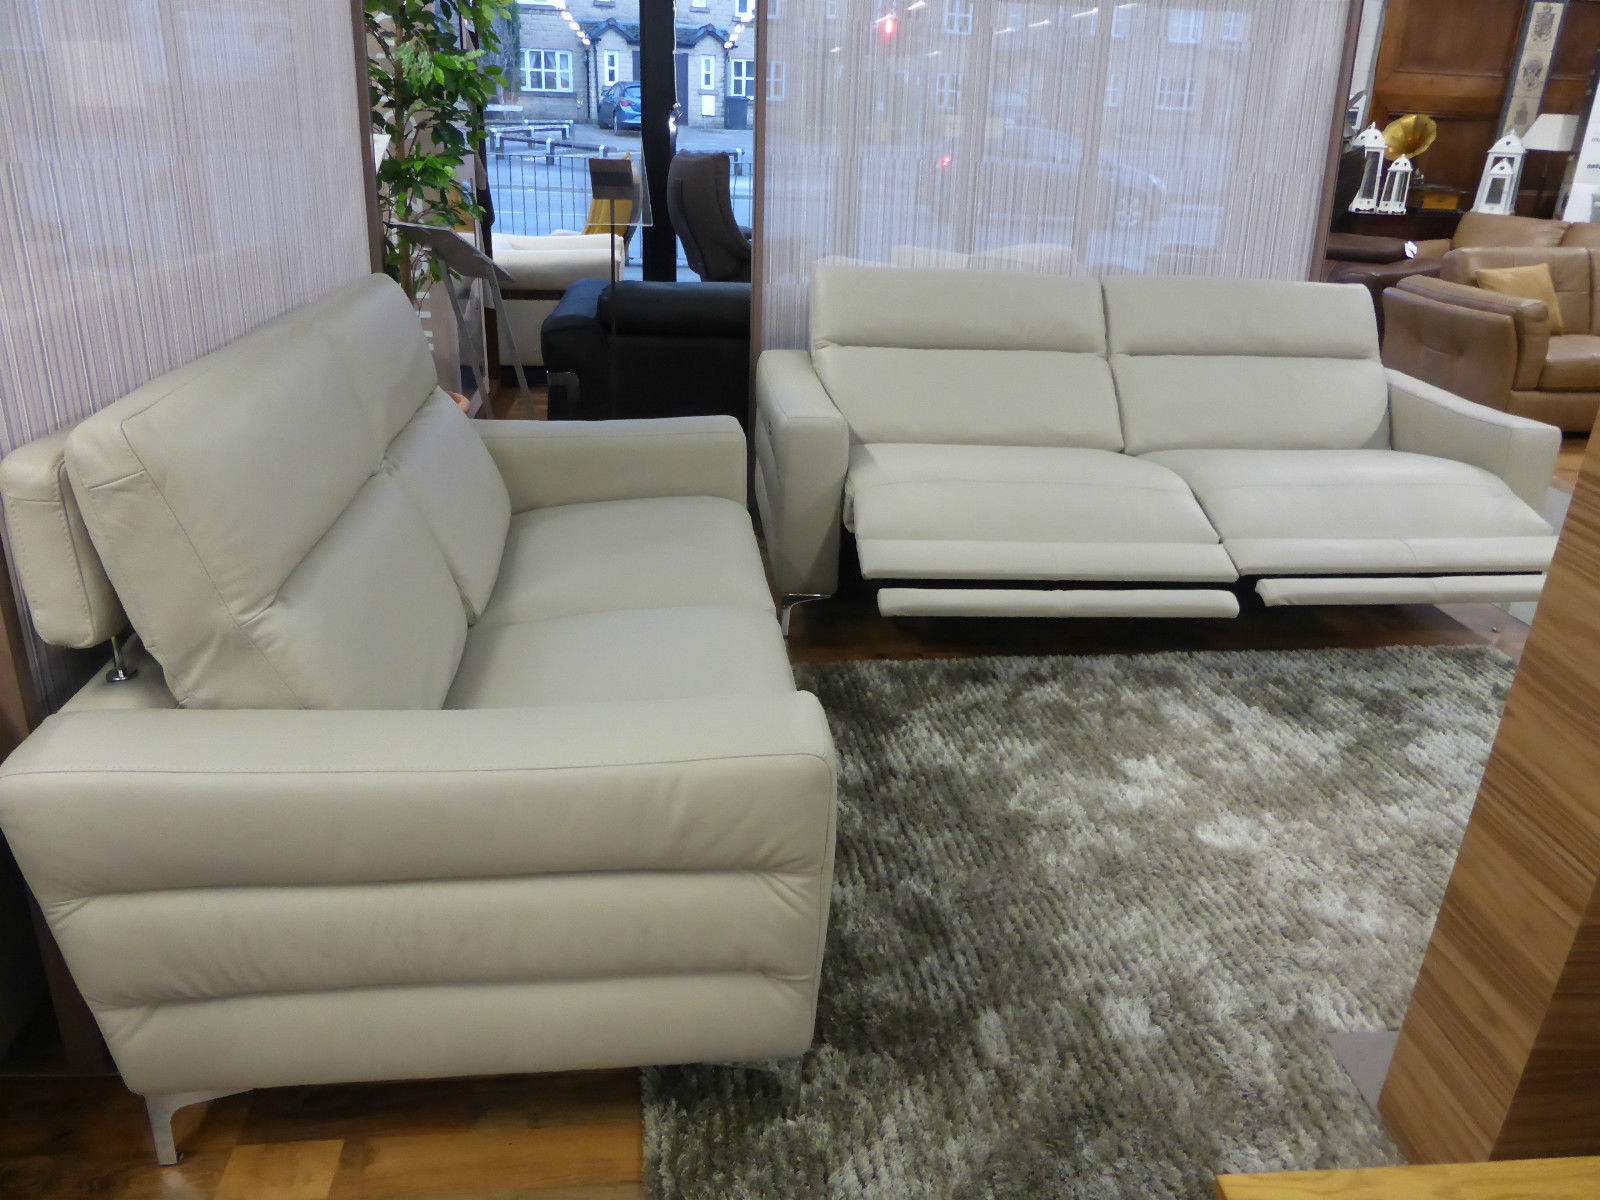 natuzzi arona 2 seater leather sofa bed wicker sofas and chairs editions pelle 3 seat power static full